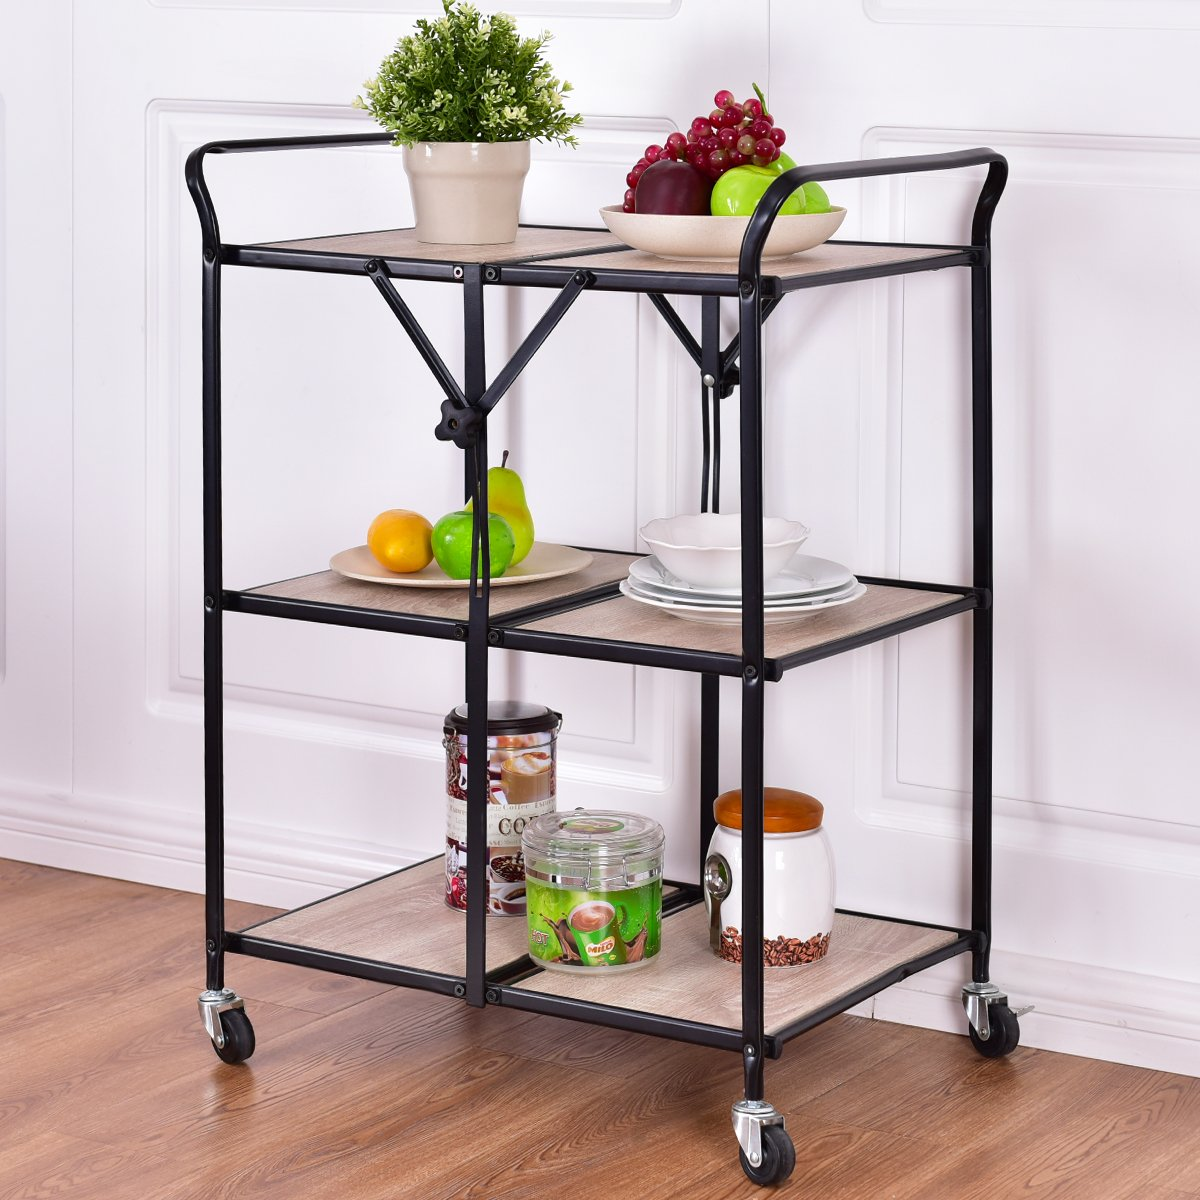 Origami SMBT-02 Foldable Kitchen Island Cart - Buy Online in El ... | 1200x1200